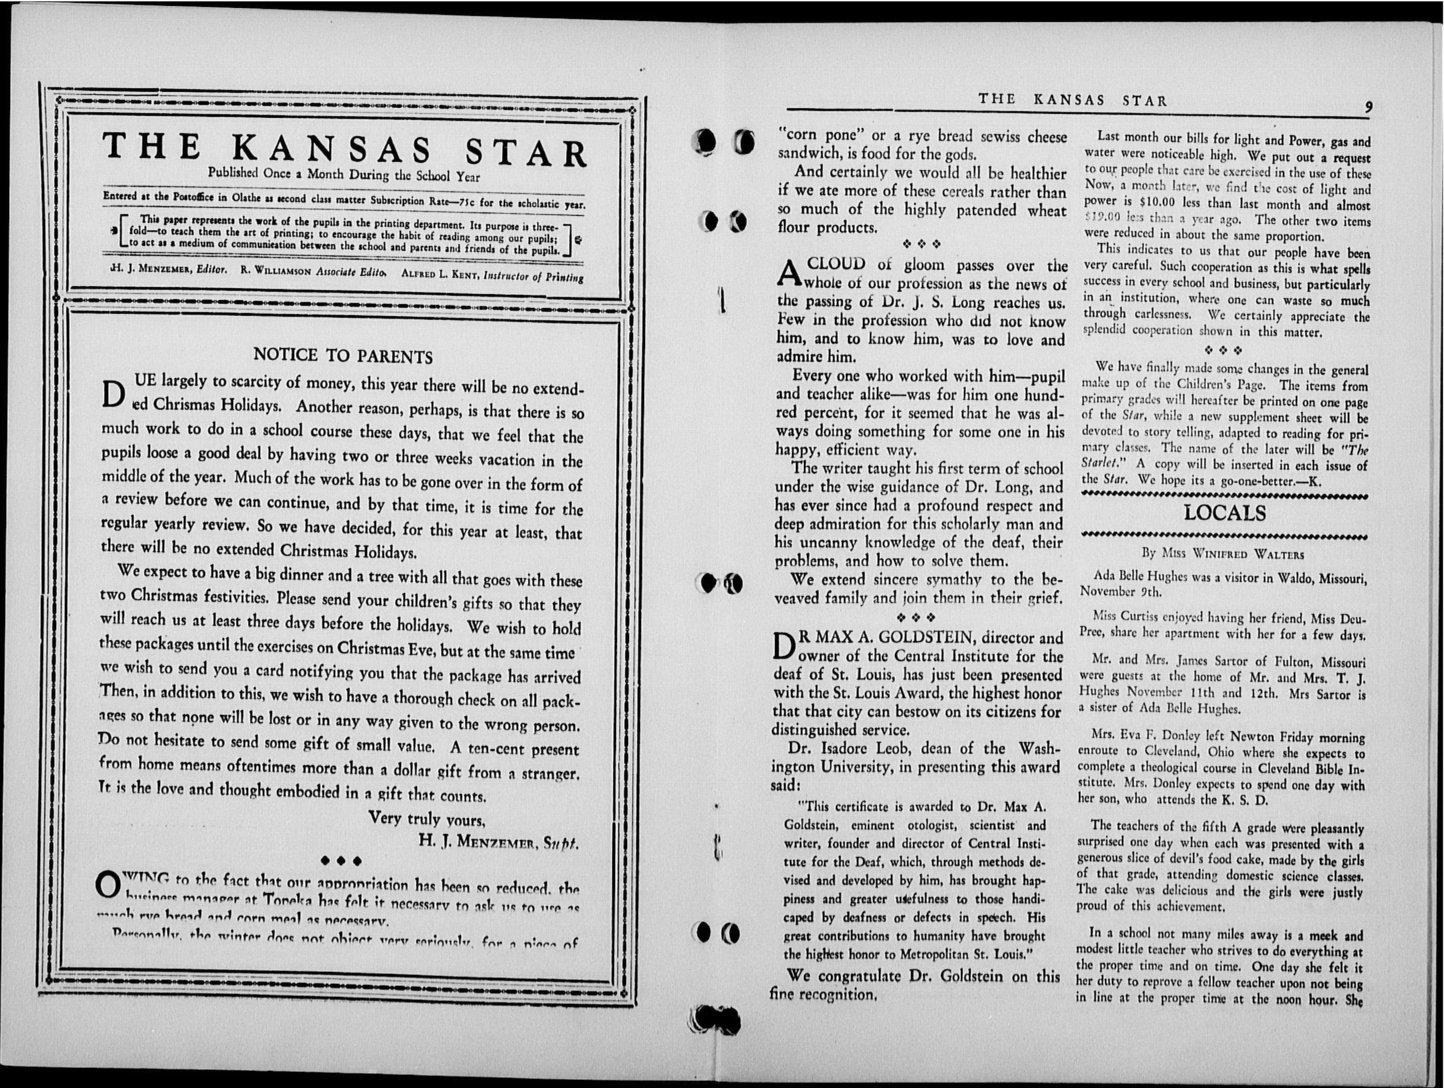 The Kansas Star, volume 58, number 3 - 8-9